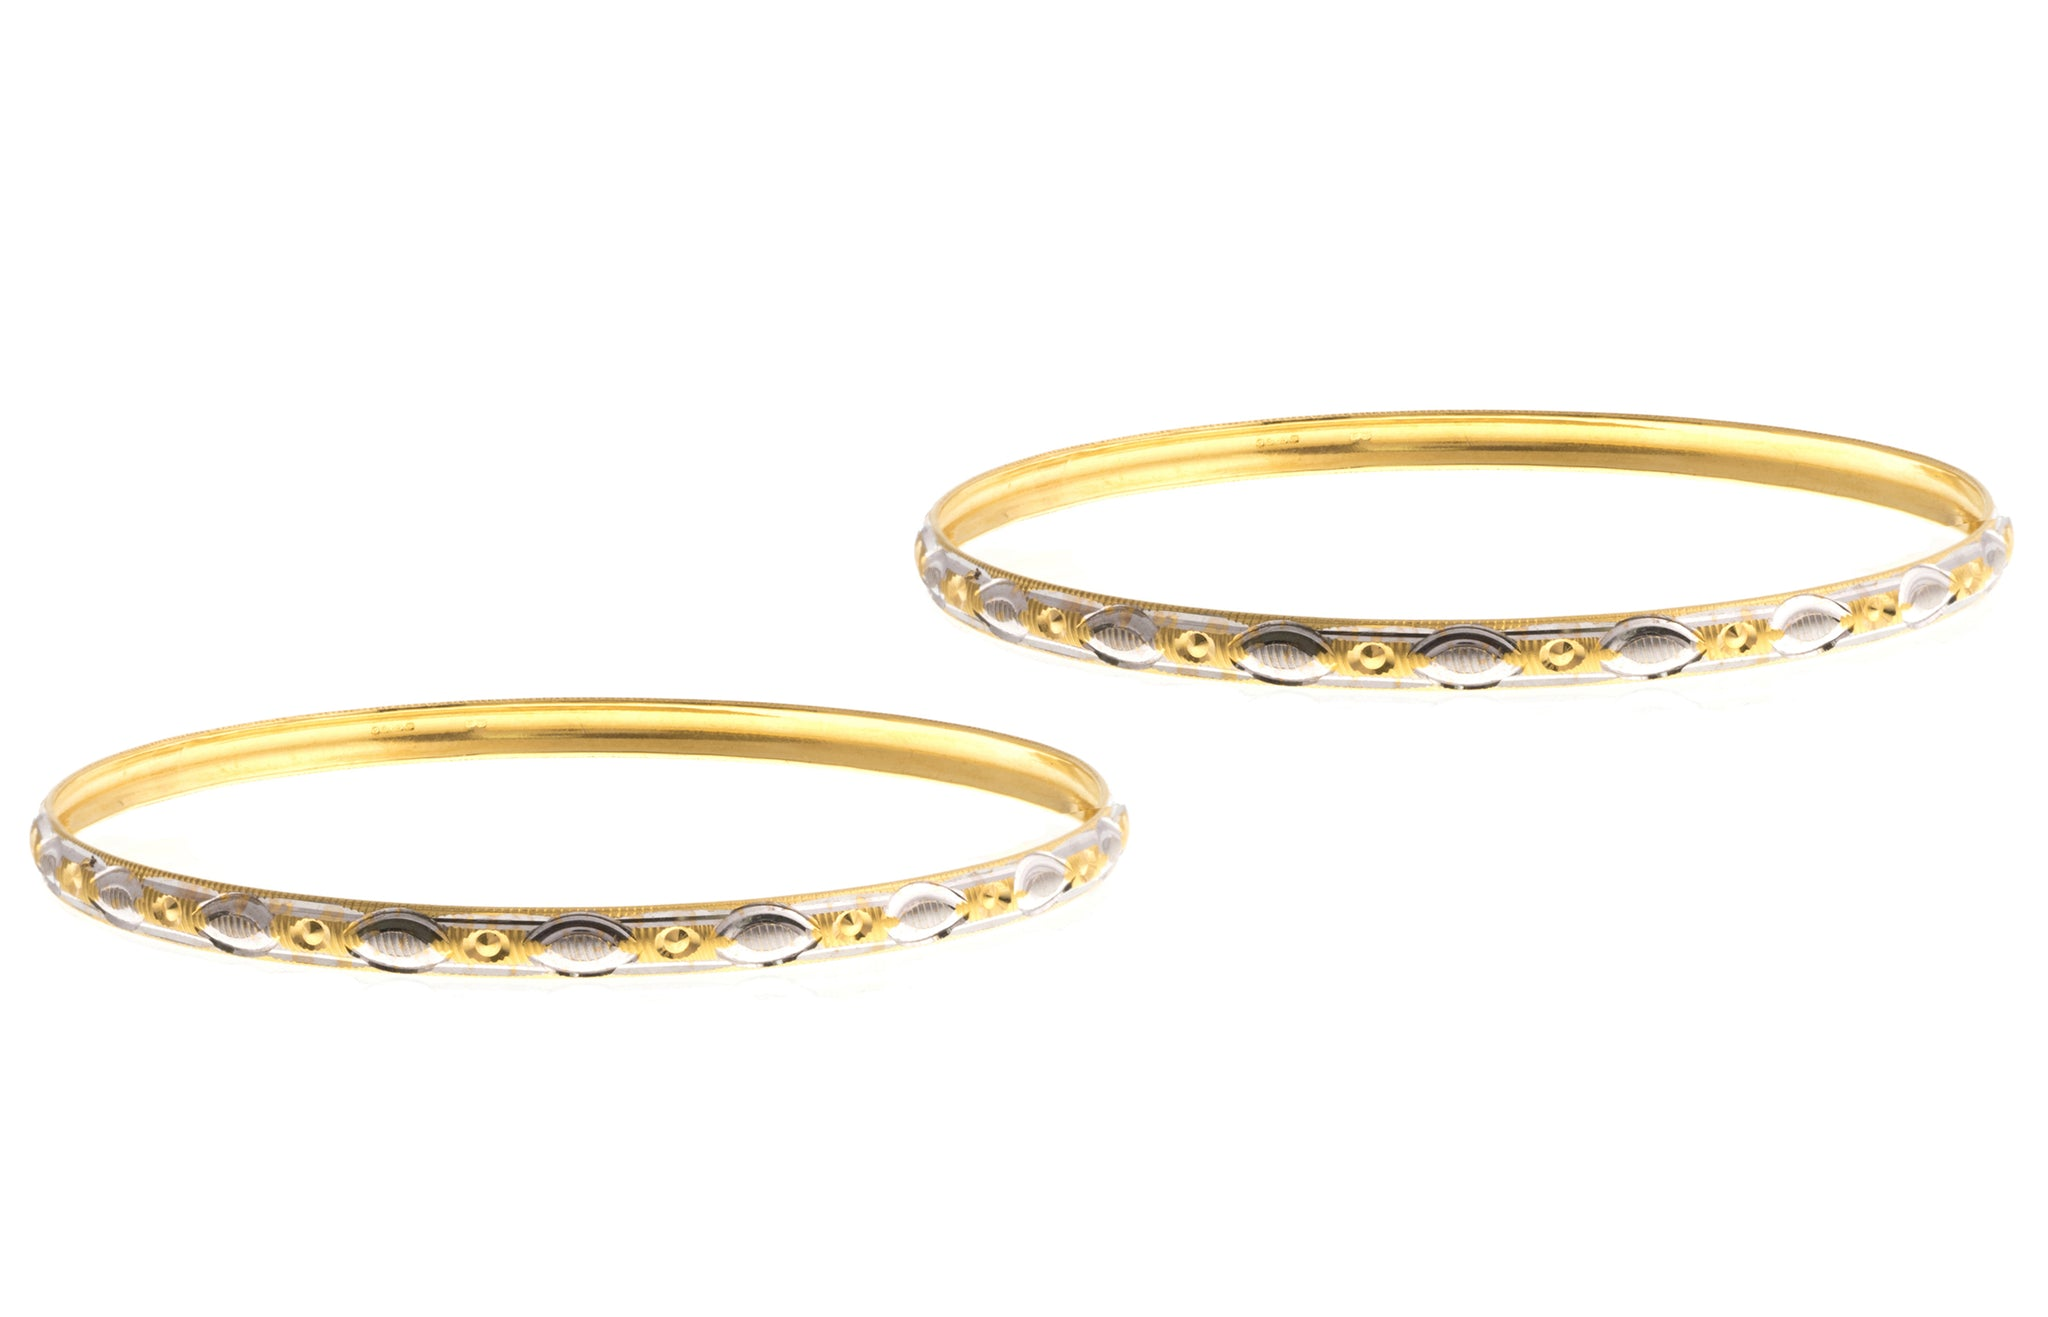 22ct Gold Two Tone Bangles (B-1422) - Pair